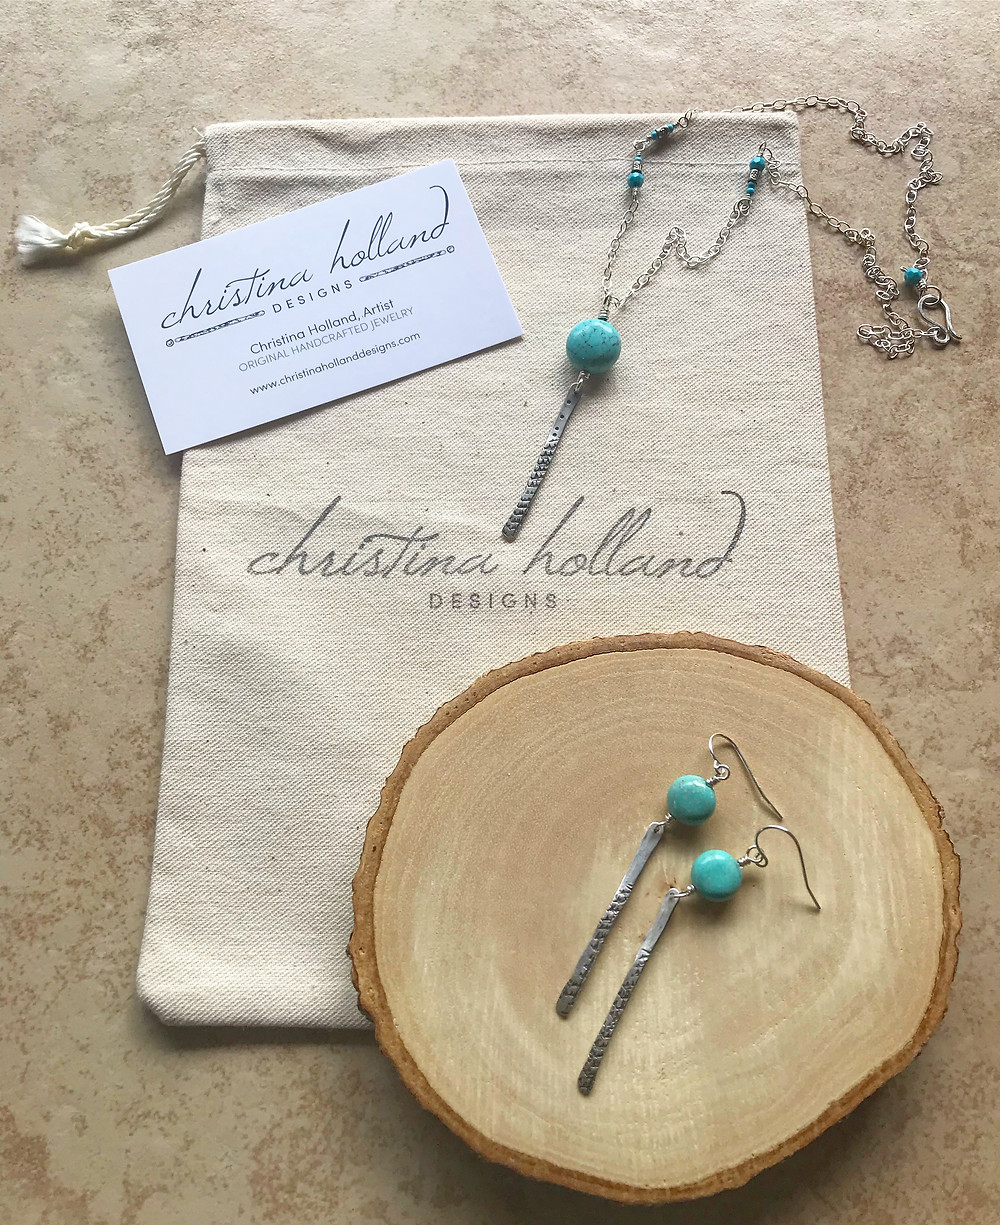 Christina Holland Designs, Sticks & Stones Jewelry in Sterling Silver & Turquoise.